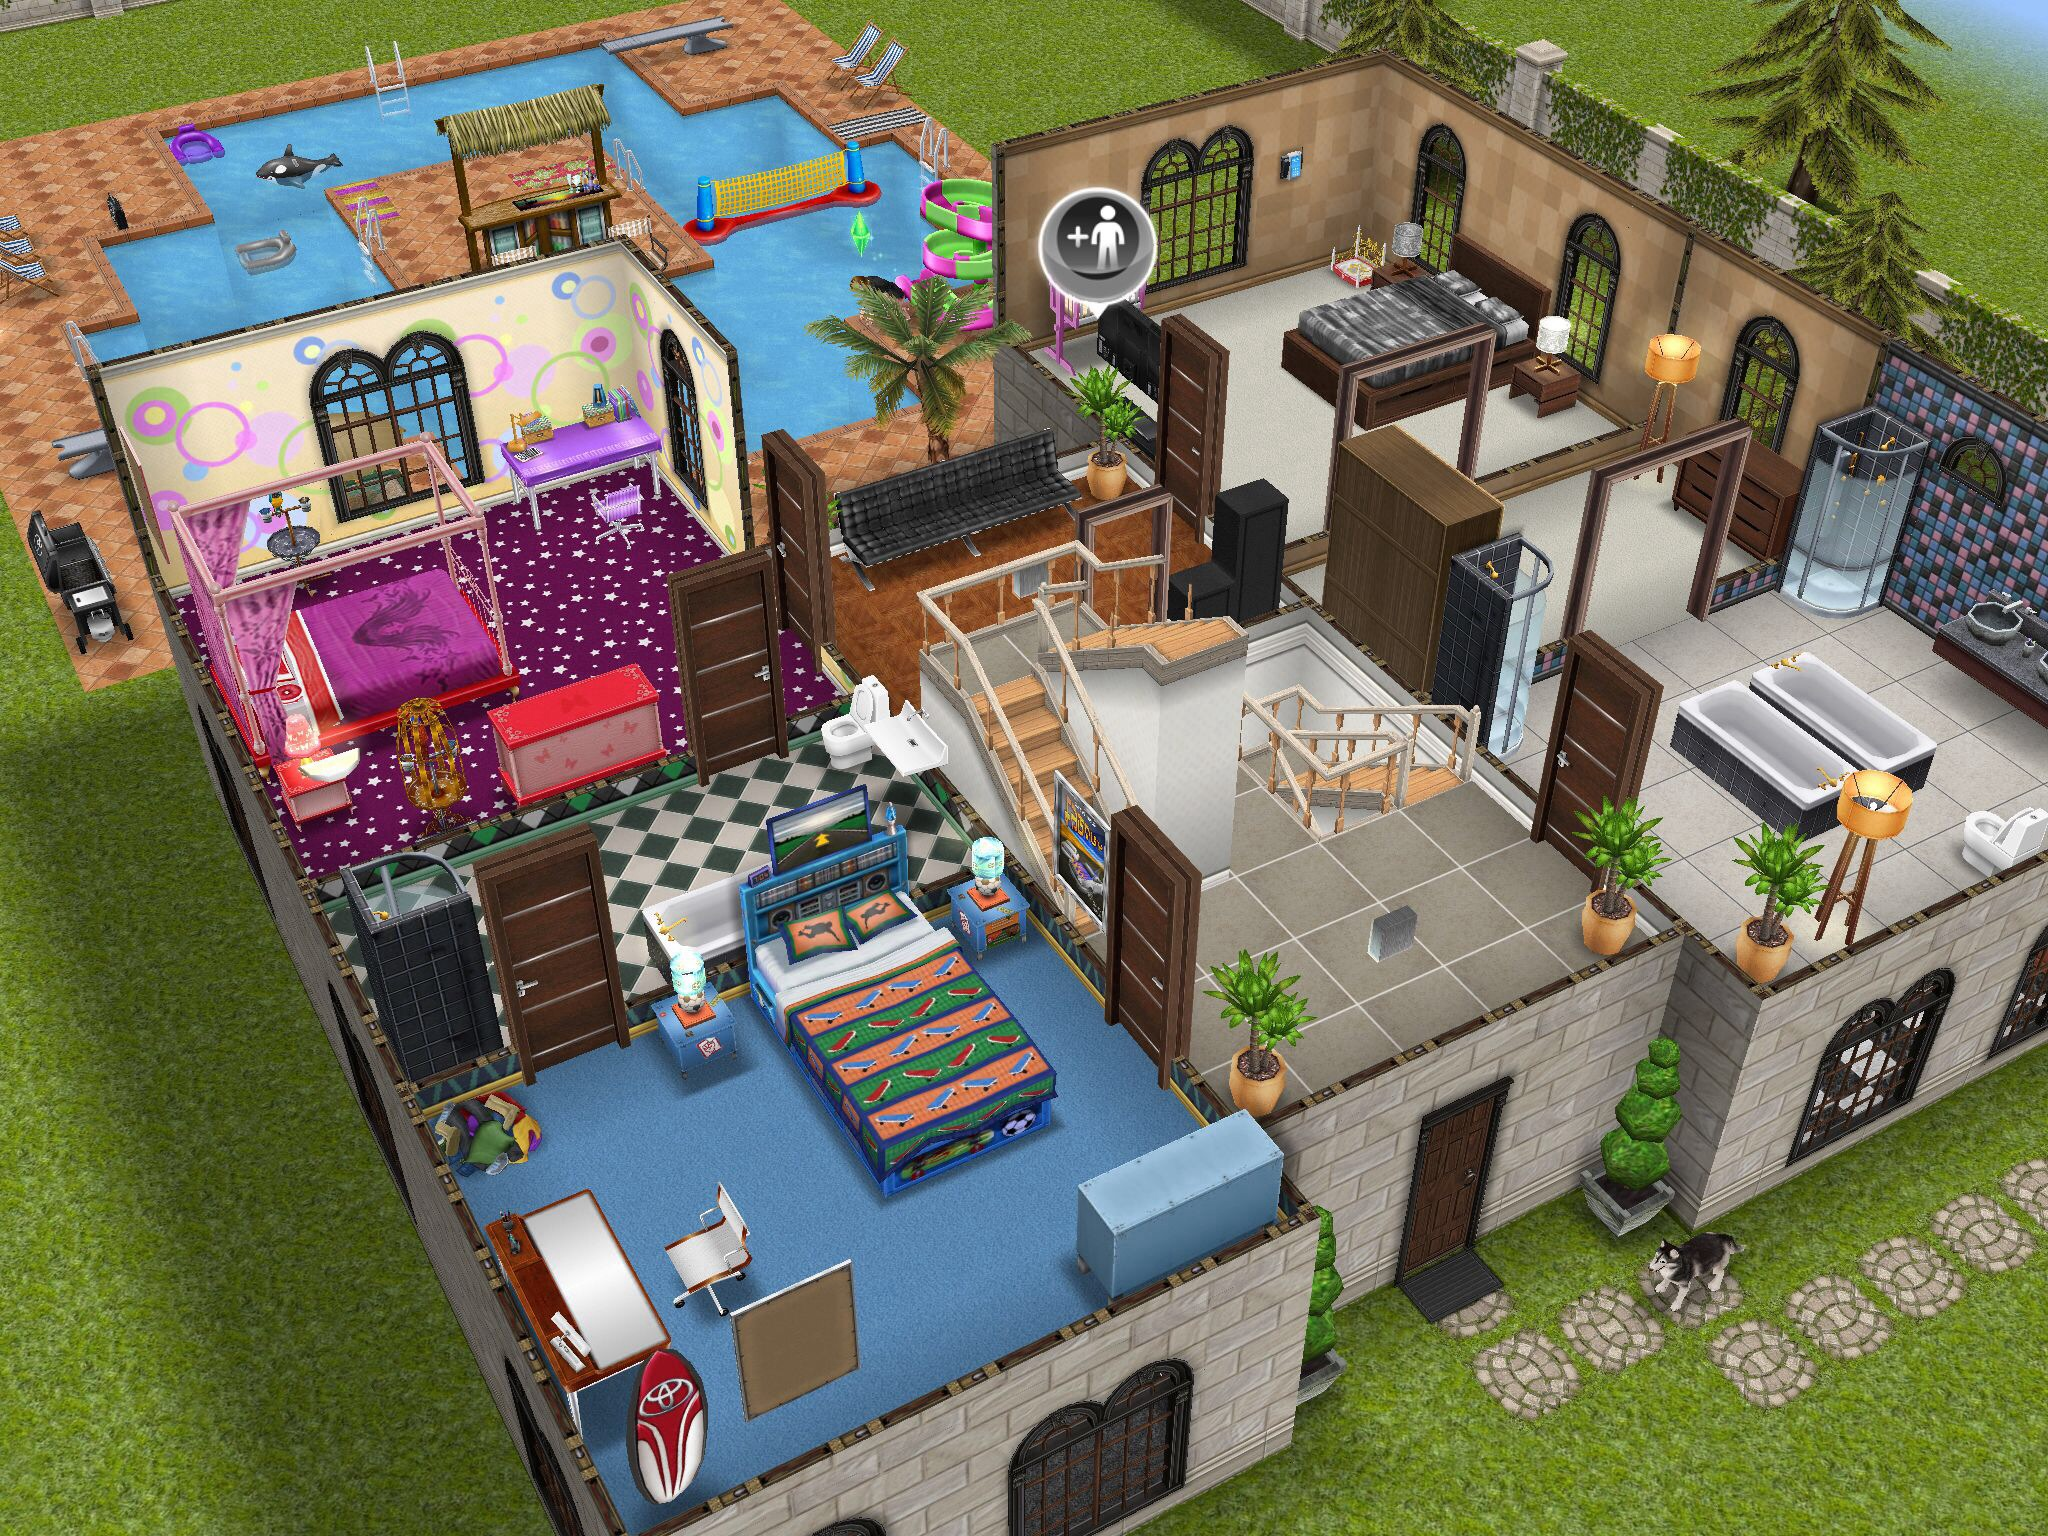 Teen Idol Mansion The Sims Freeplay Wiki Fandom Powered By Wikia  Sims  Freeplay Baby Bathroom. The Sim Freeplay Baby Toilet